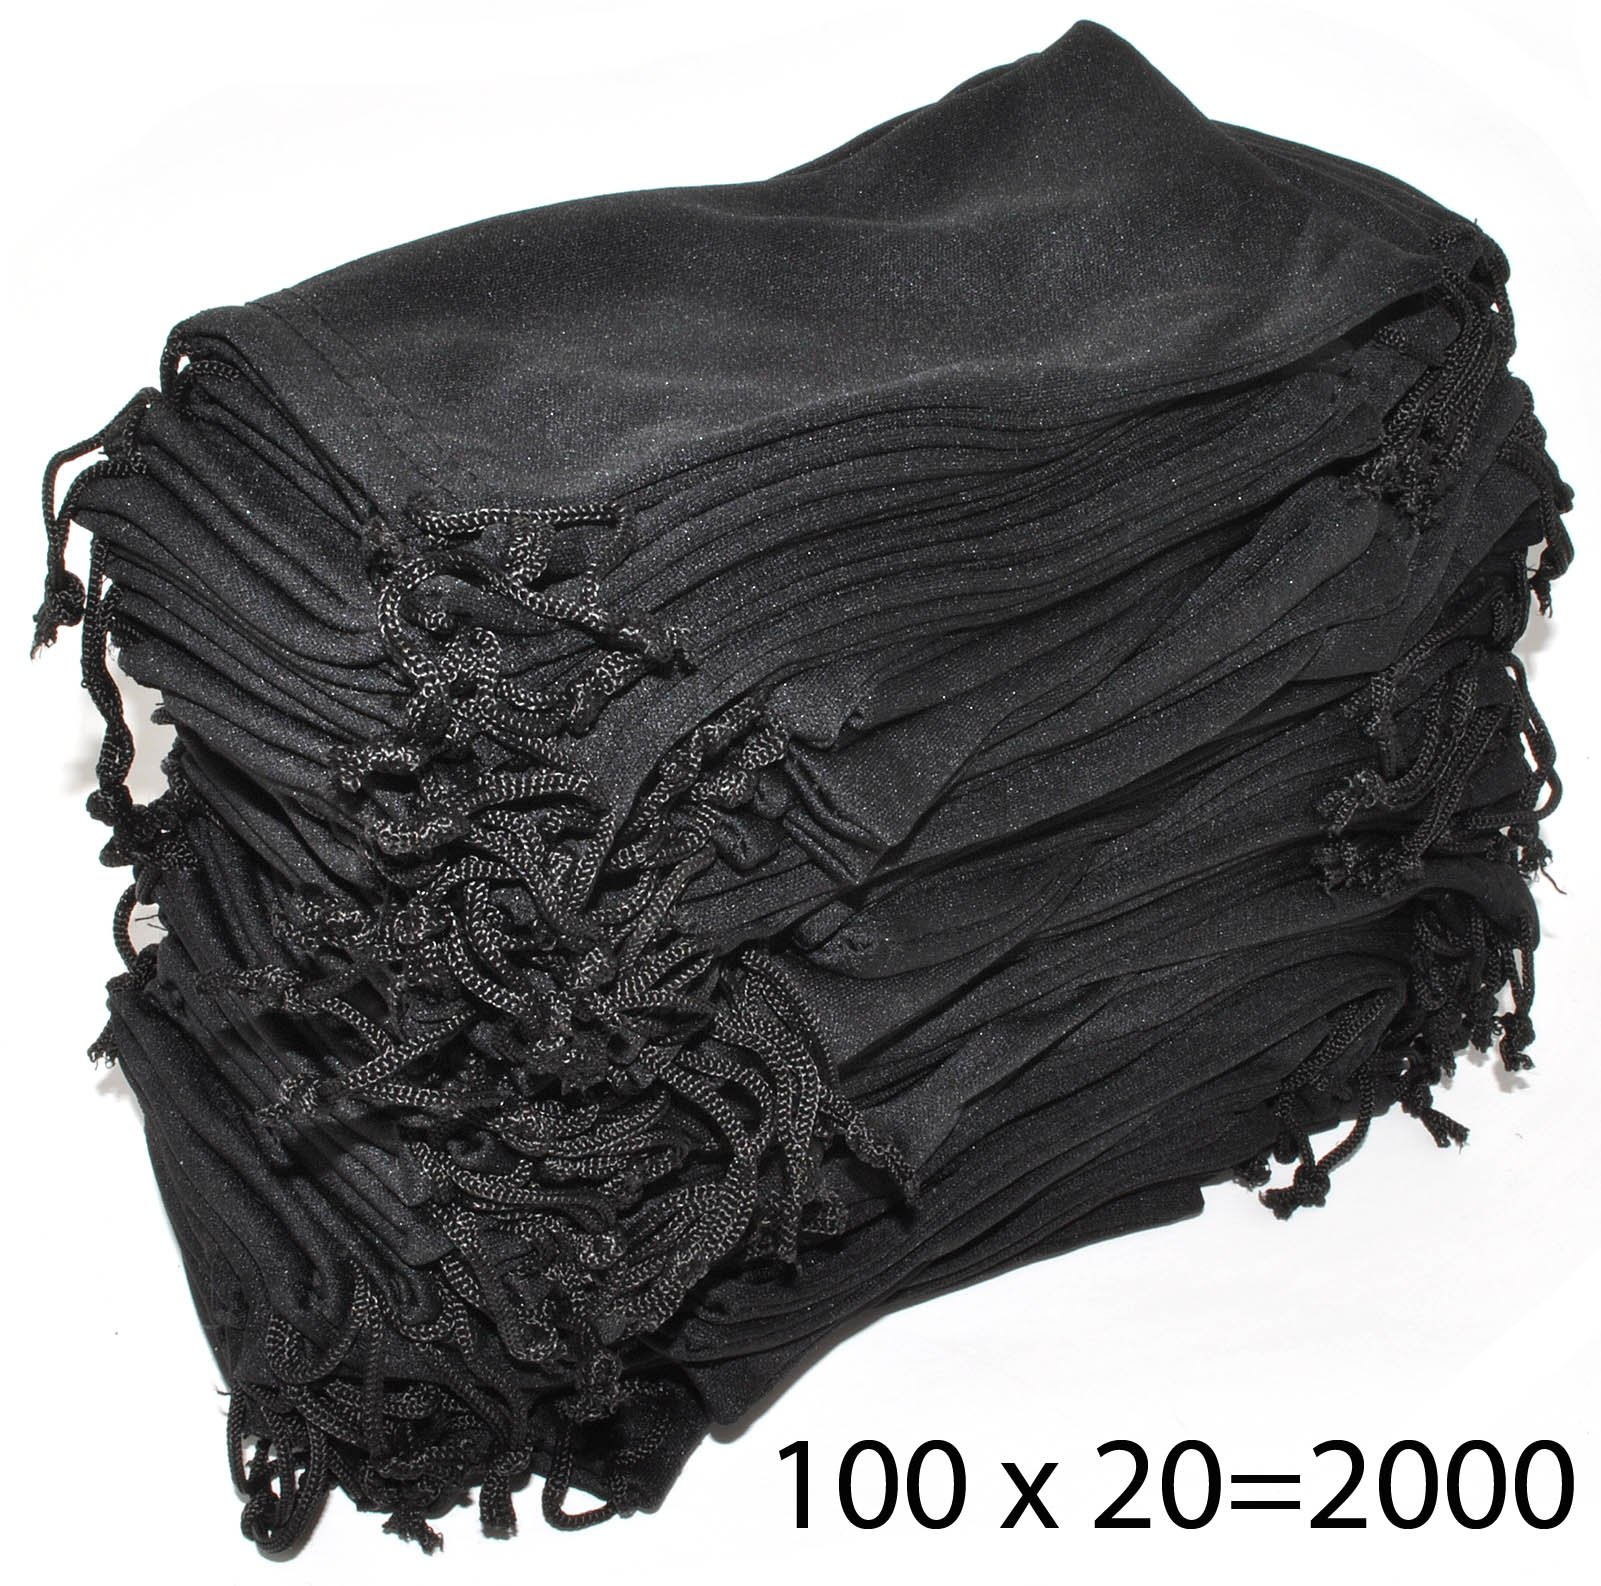 Wholesale Pouches Cleaning Case Bag Black 2000 PCS by OWL